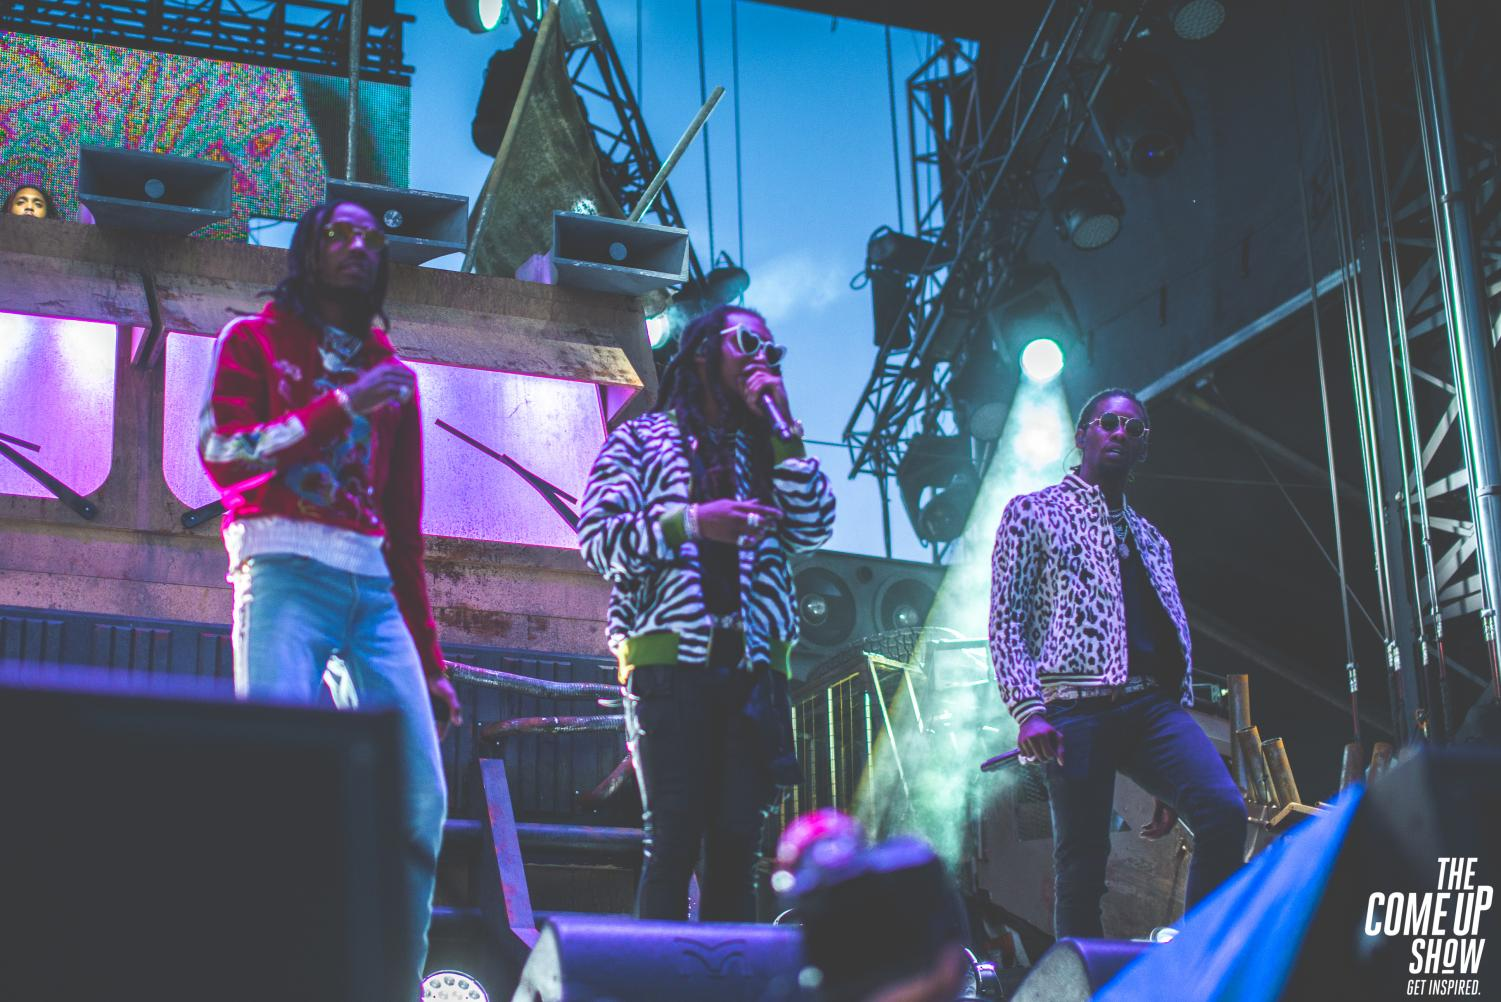 Migos has released two albums within one year, both of which reached number one on the Billboard top 200 albums in each of their first week available.